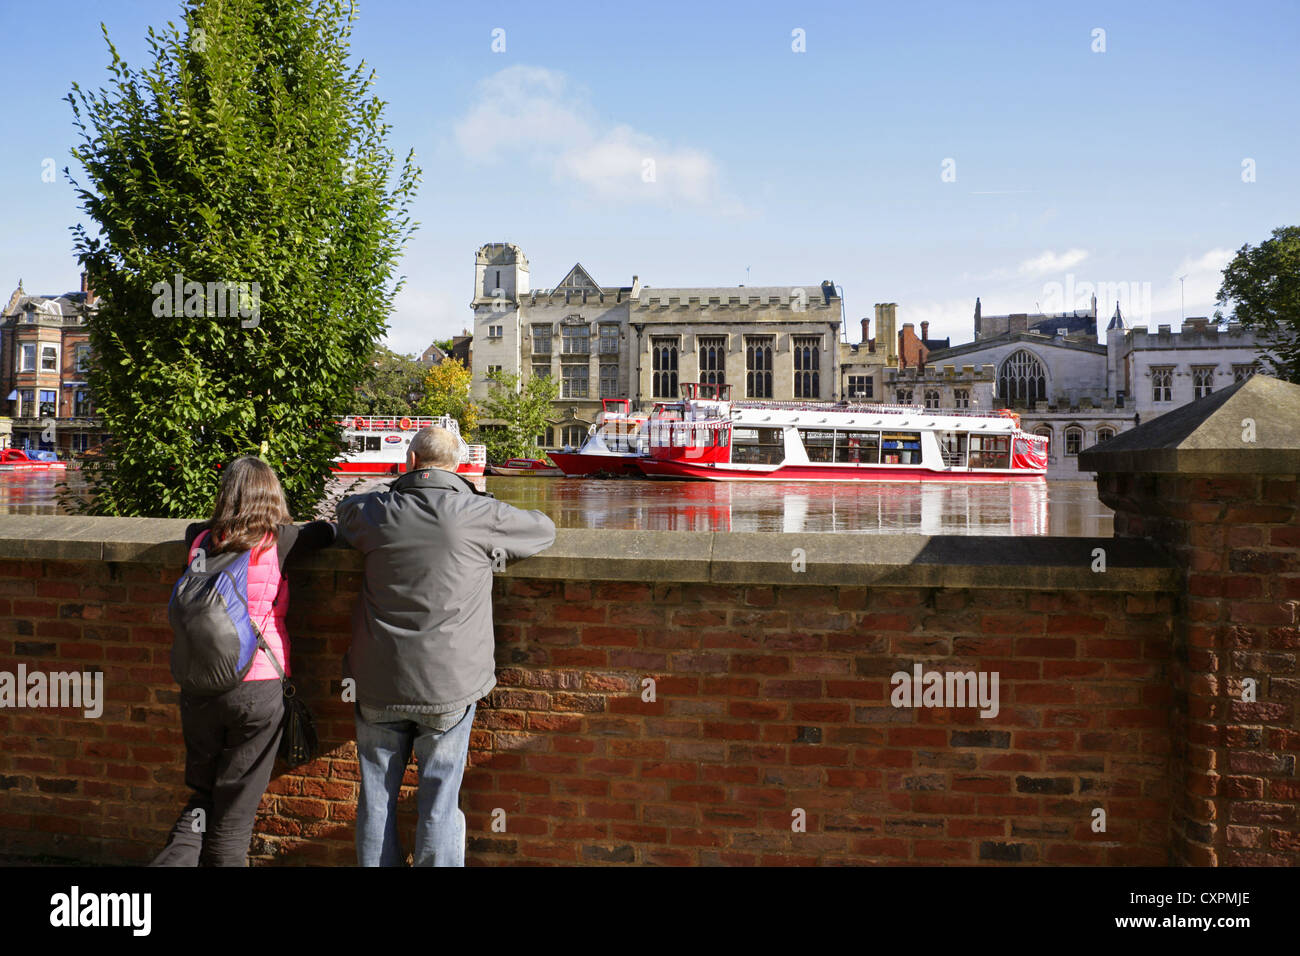 Tourists look over flood defence barriers at the flooded River Ouse, York, and the historic Guildhall. Stock Photo